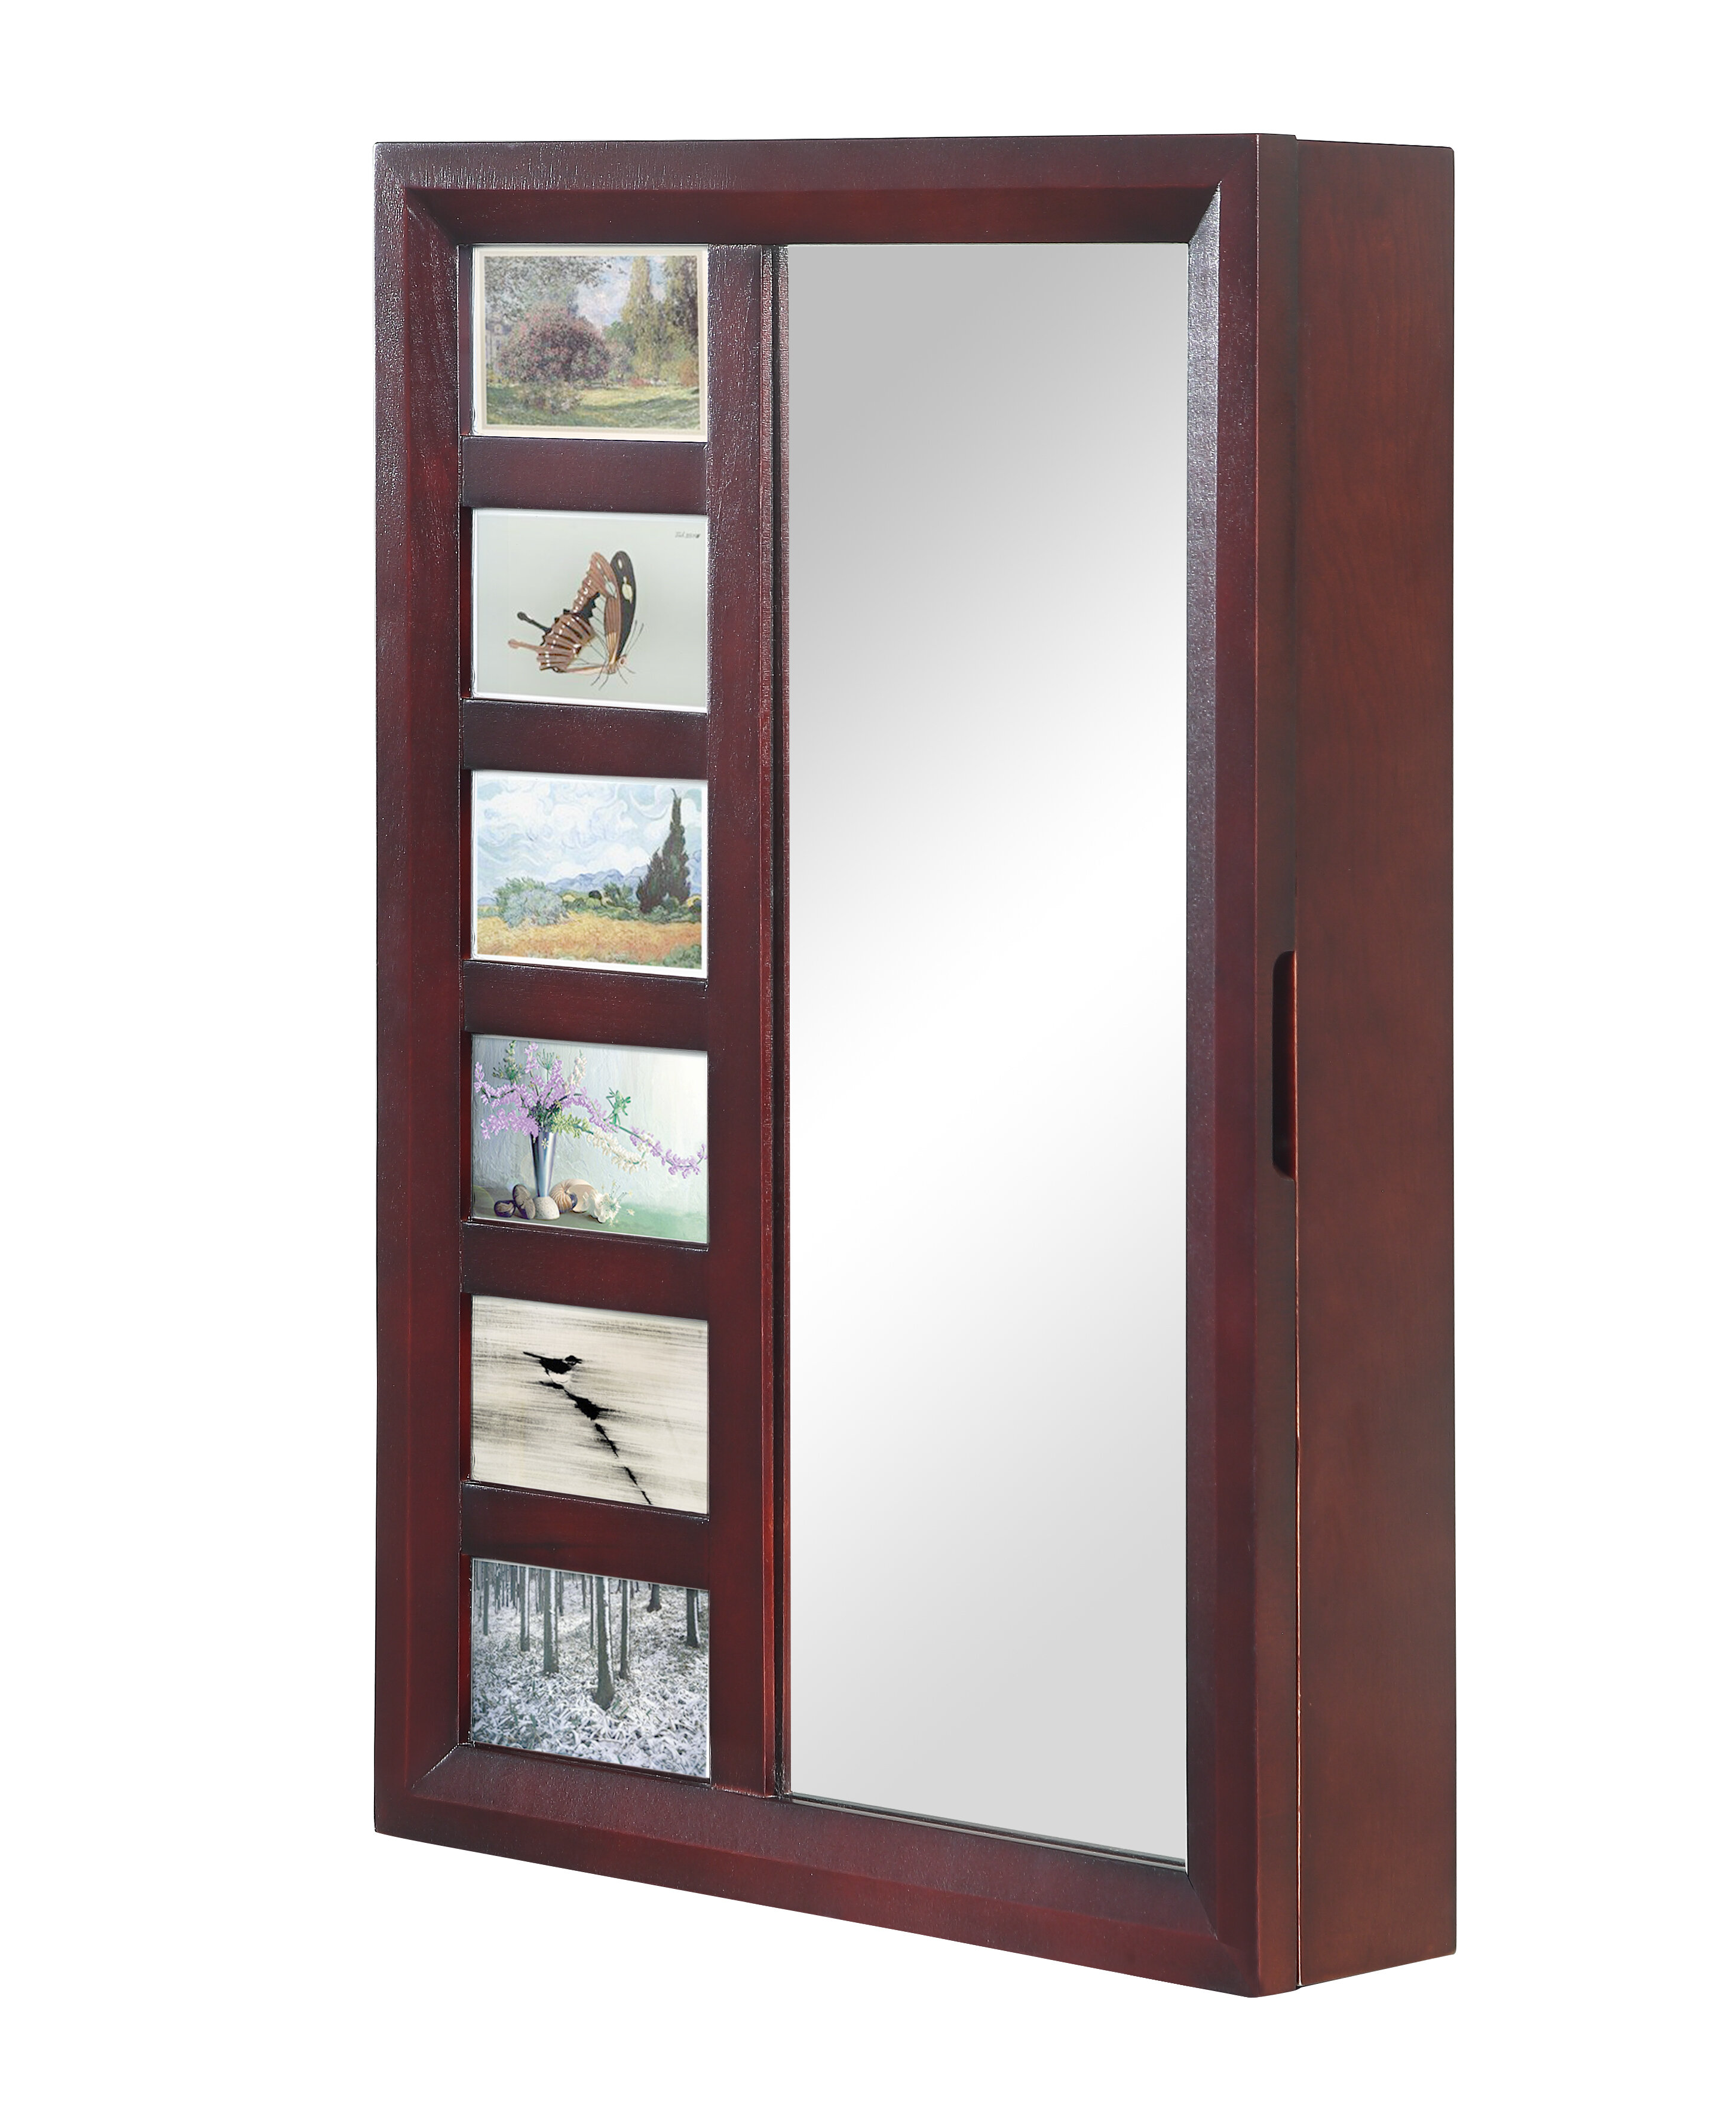 Image of: Tessa Wall Mounted Jewelry Armoire With Mirror Reviews Birch Lane